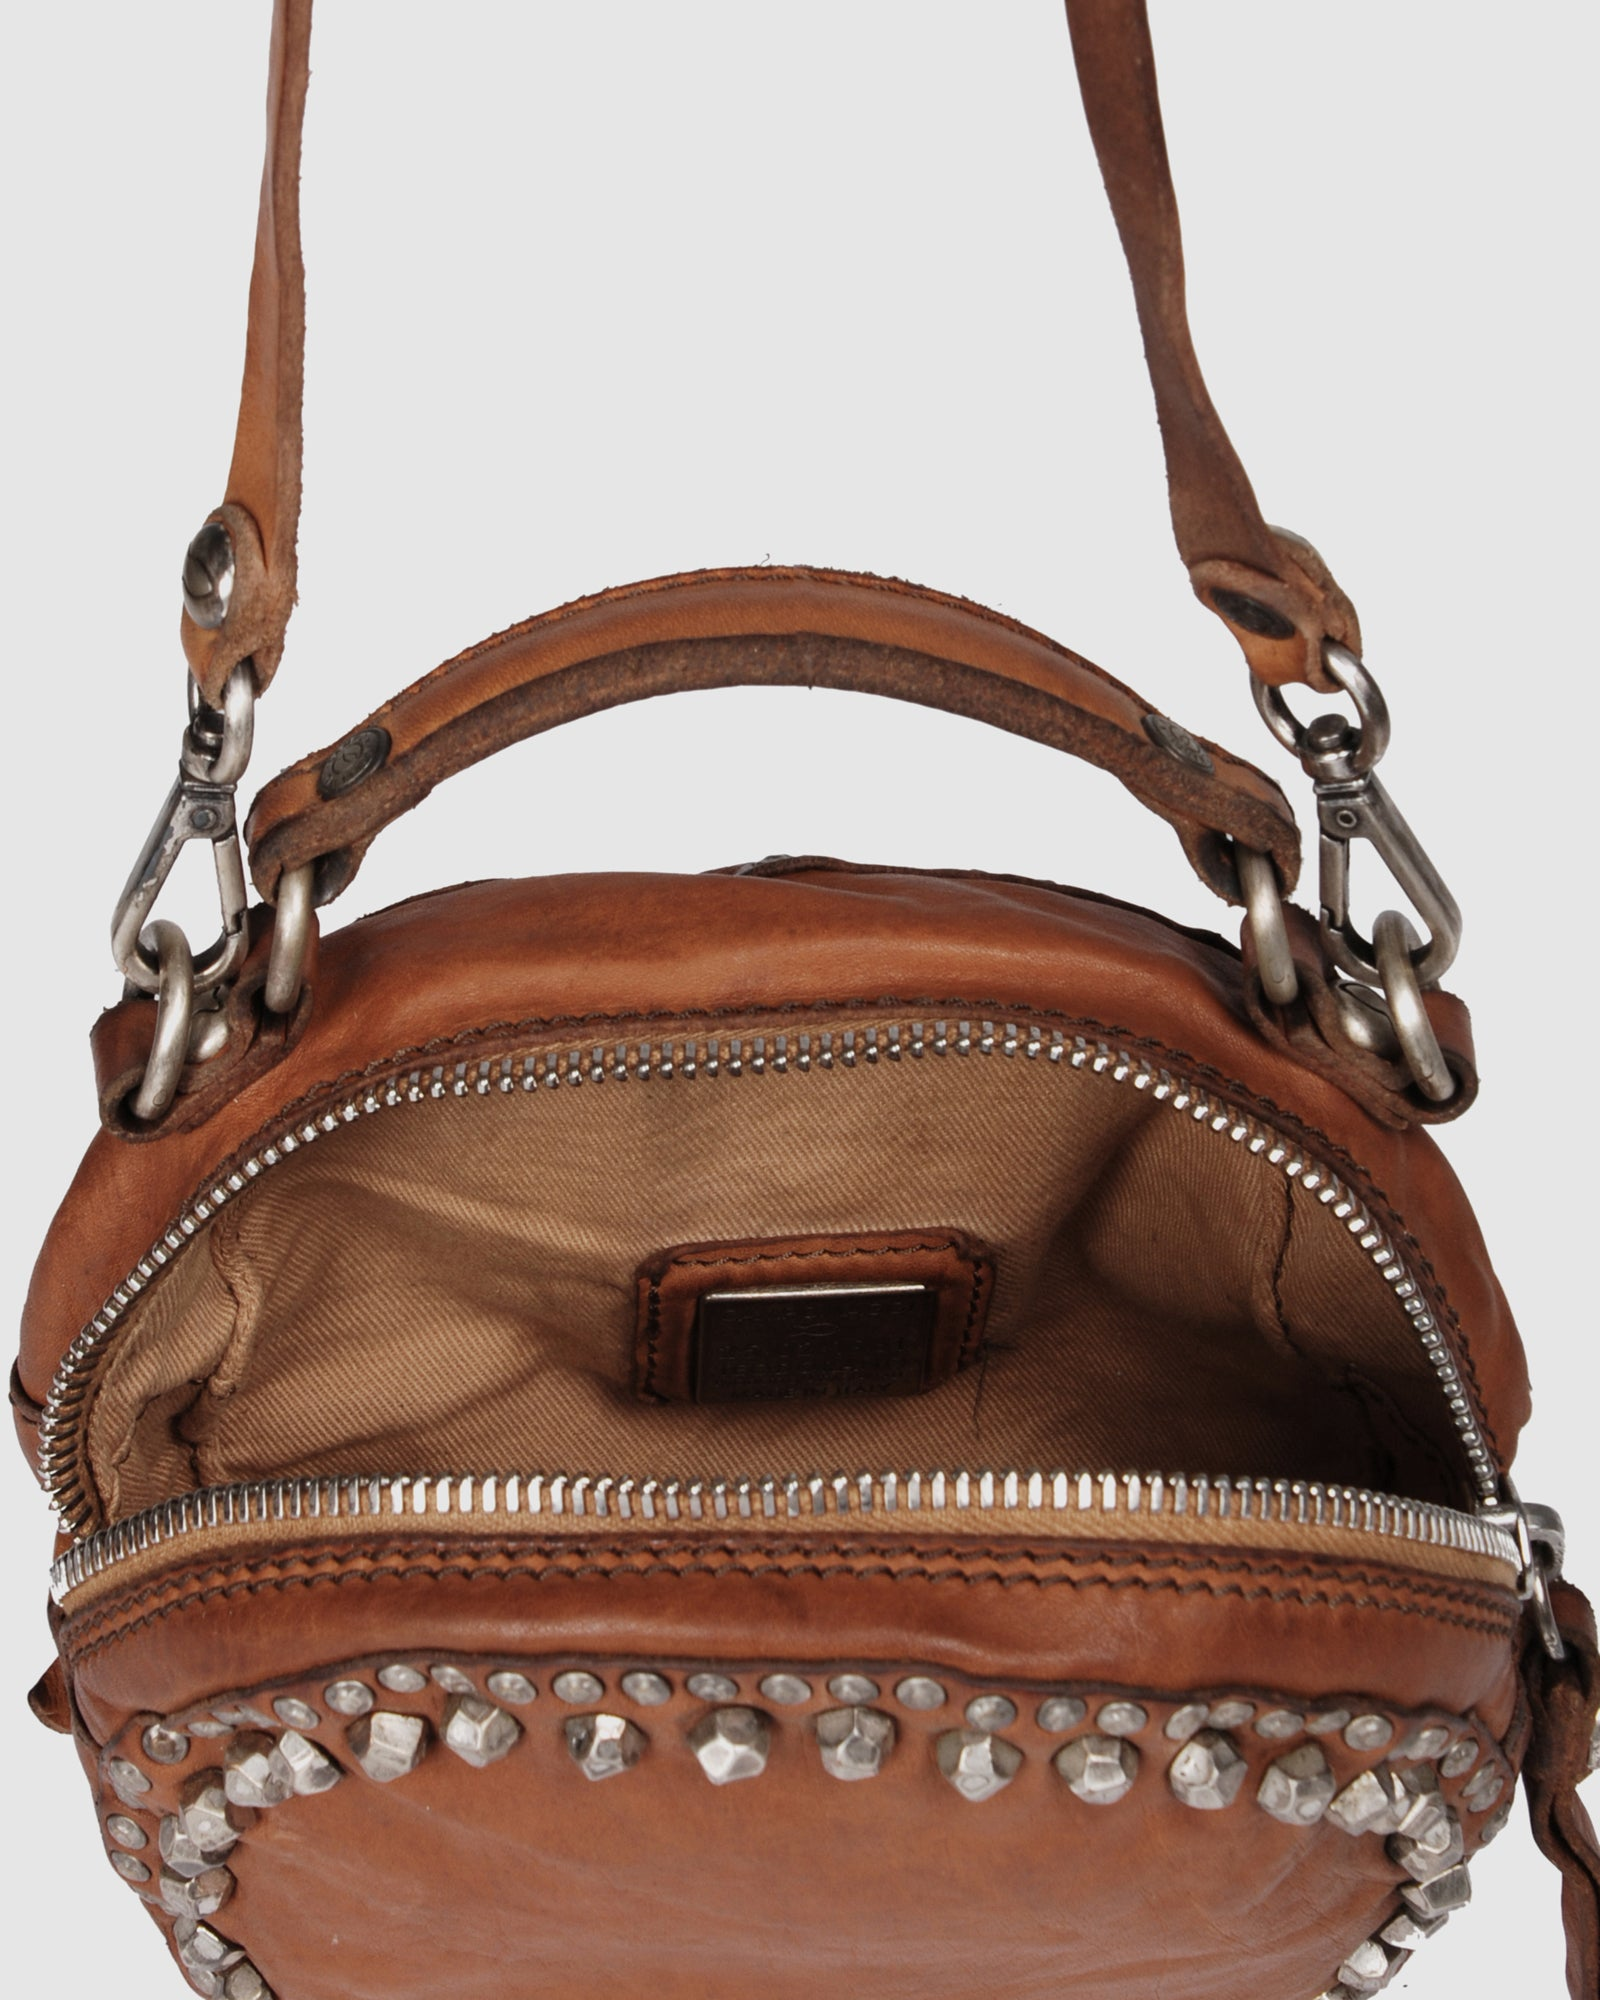 CAMPOMAGGI MIDNIGHT ROUND CROSS BODY BAG COGNAC LEATHER